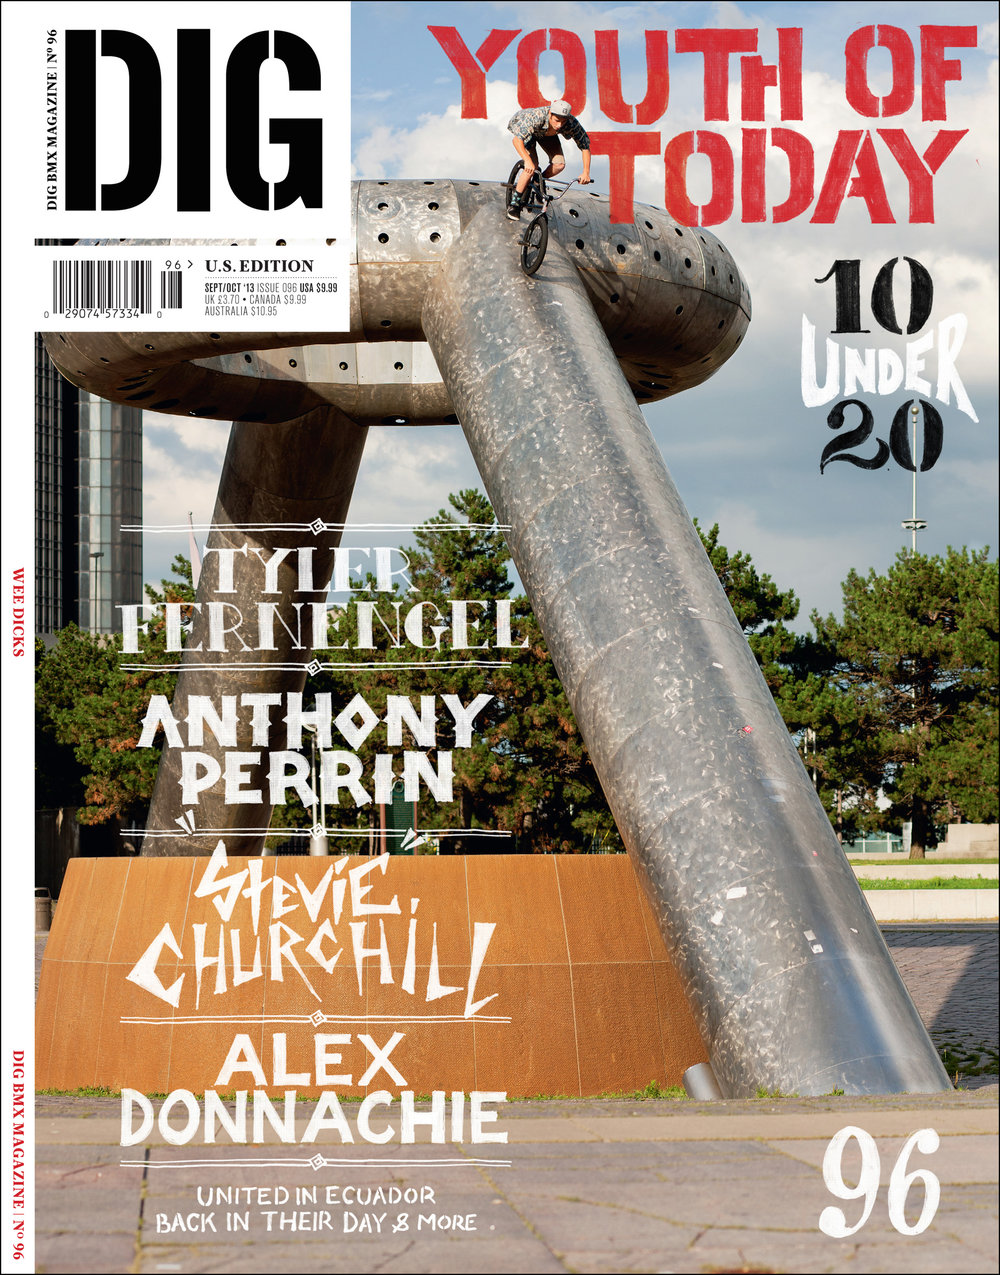 andrewwhite_photo-digbmx-cover-3.JPG